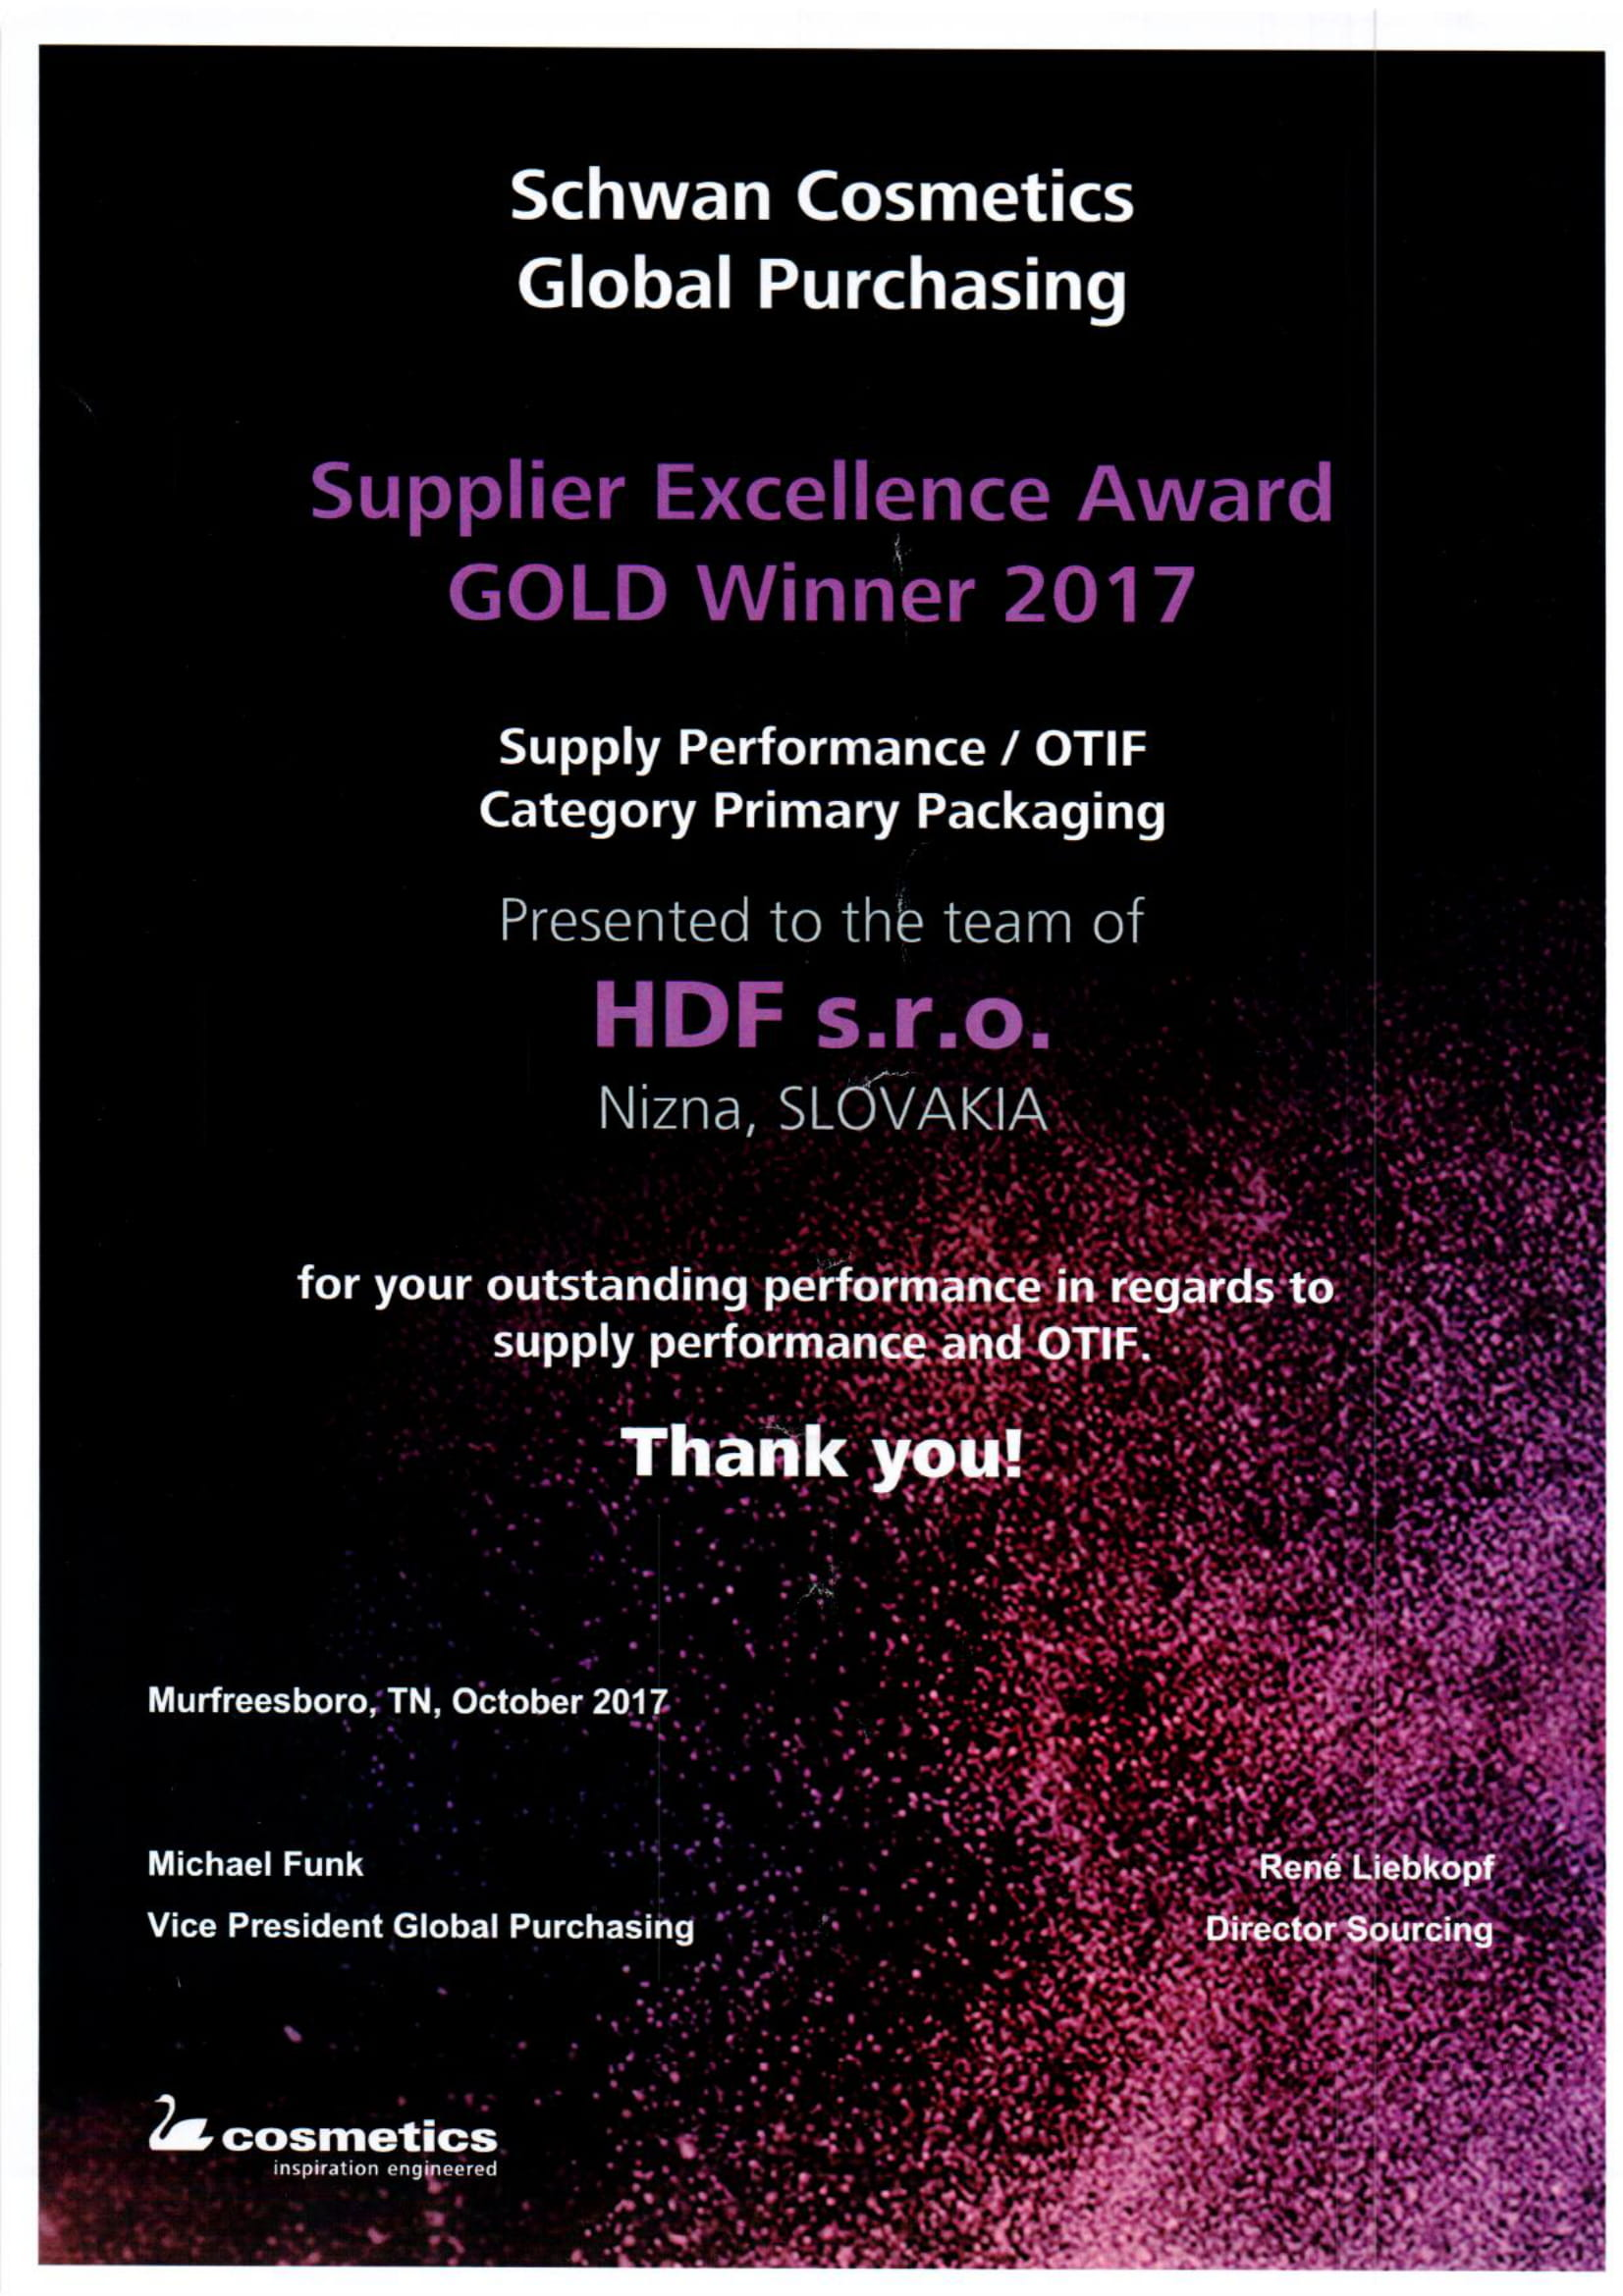 SSC Supply performance Gold winner 2017-1